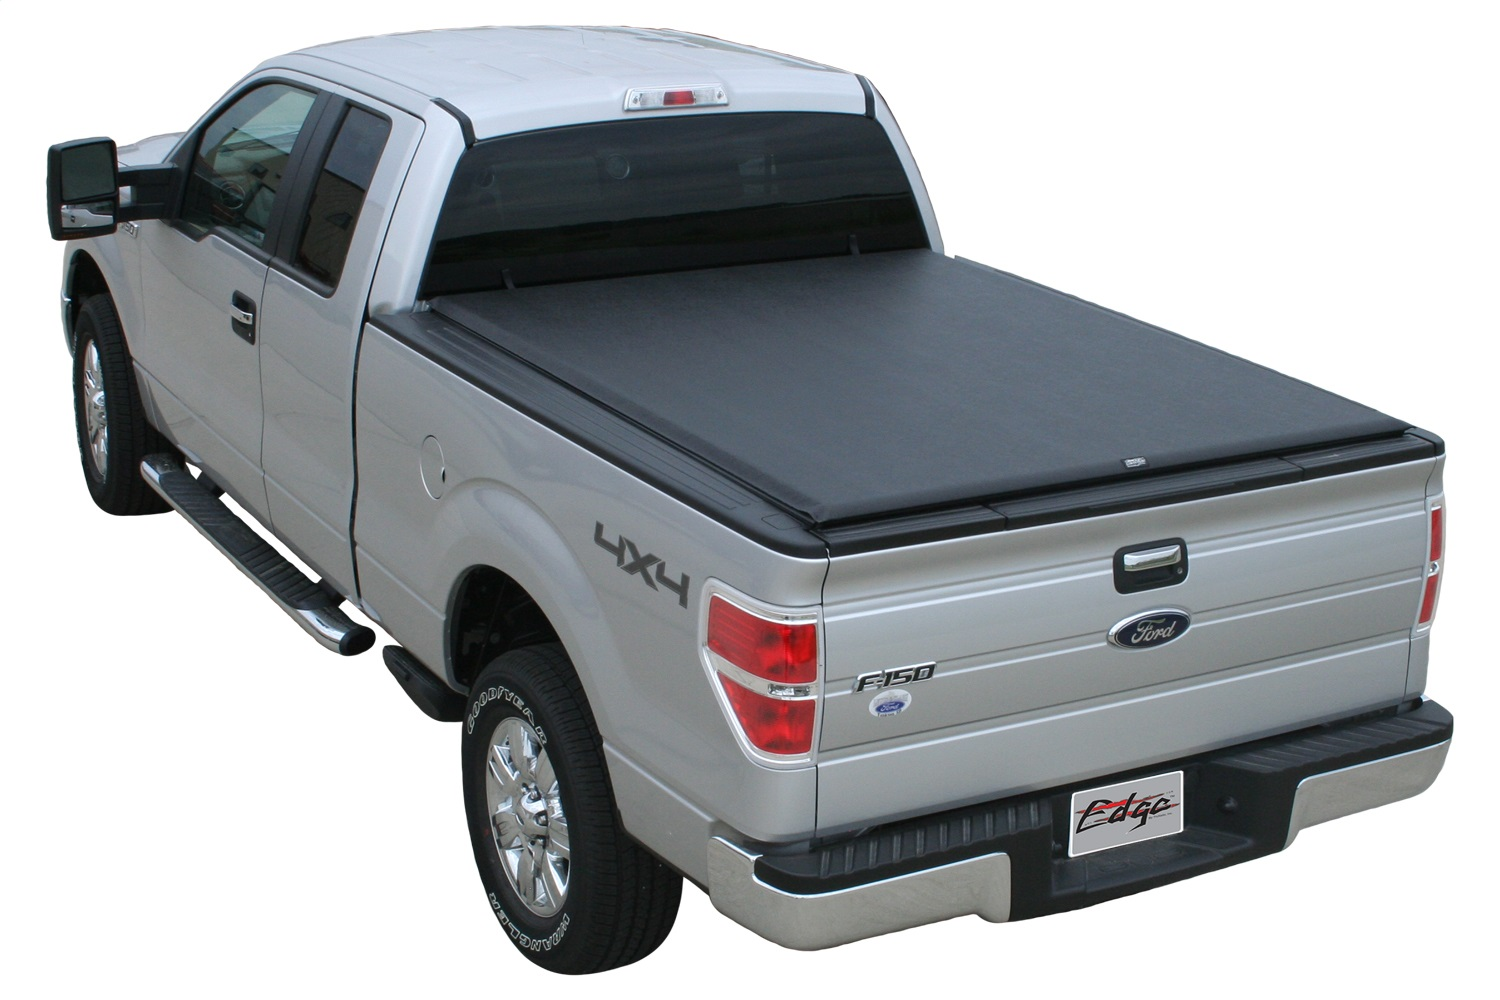 Truxedo (Shur-co) Tonneau Cover (878101)